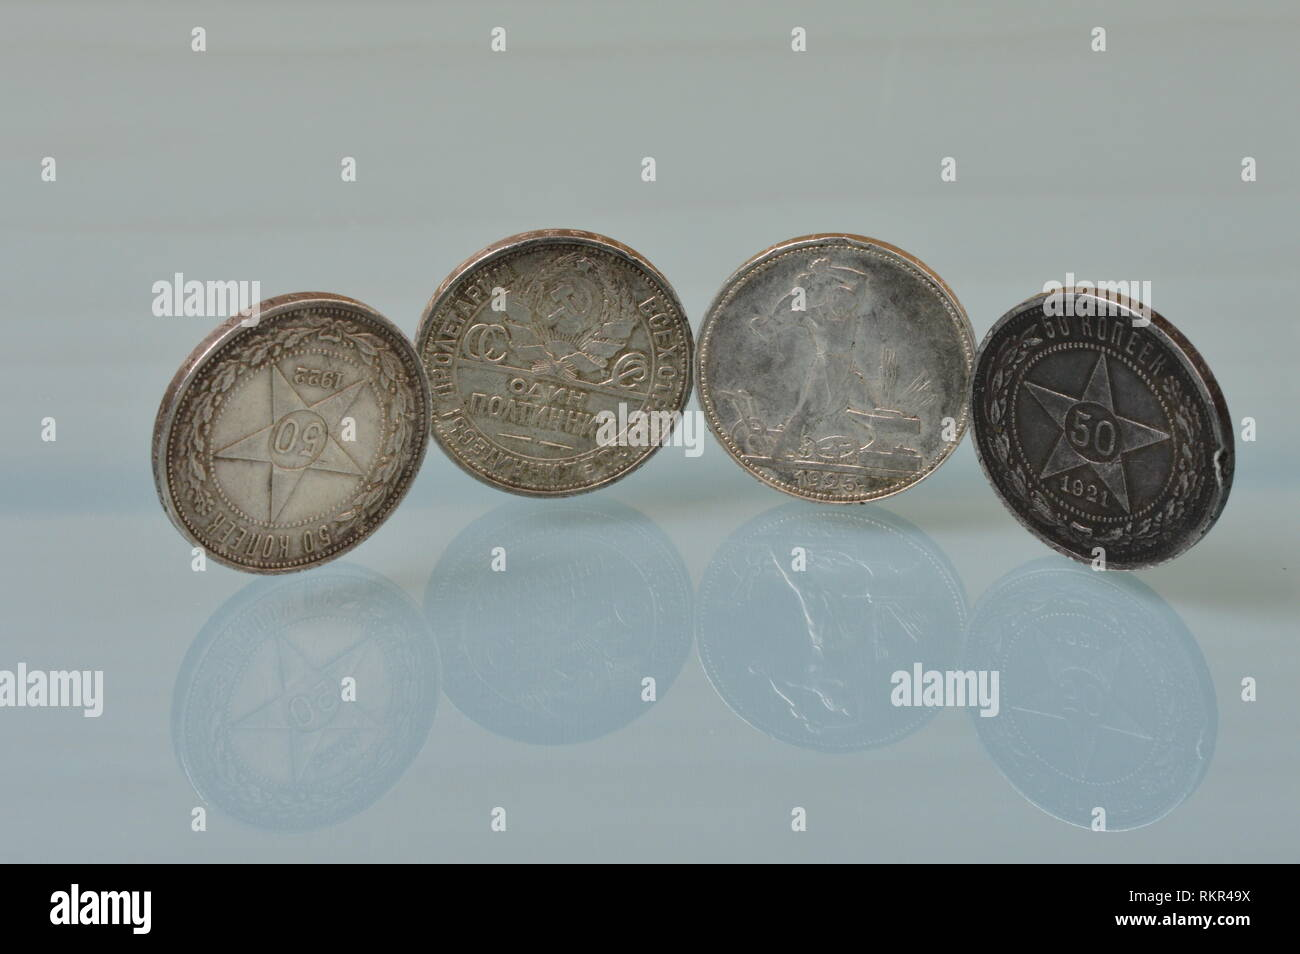 Silver coins fifty kopecks art of the proletariat minted from 1921 to 1925 the Soviet Union Stock Photo